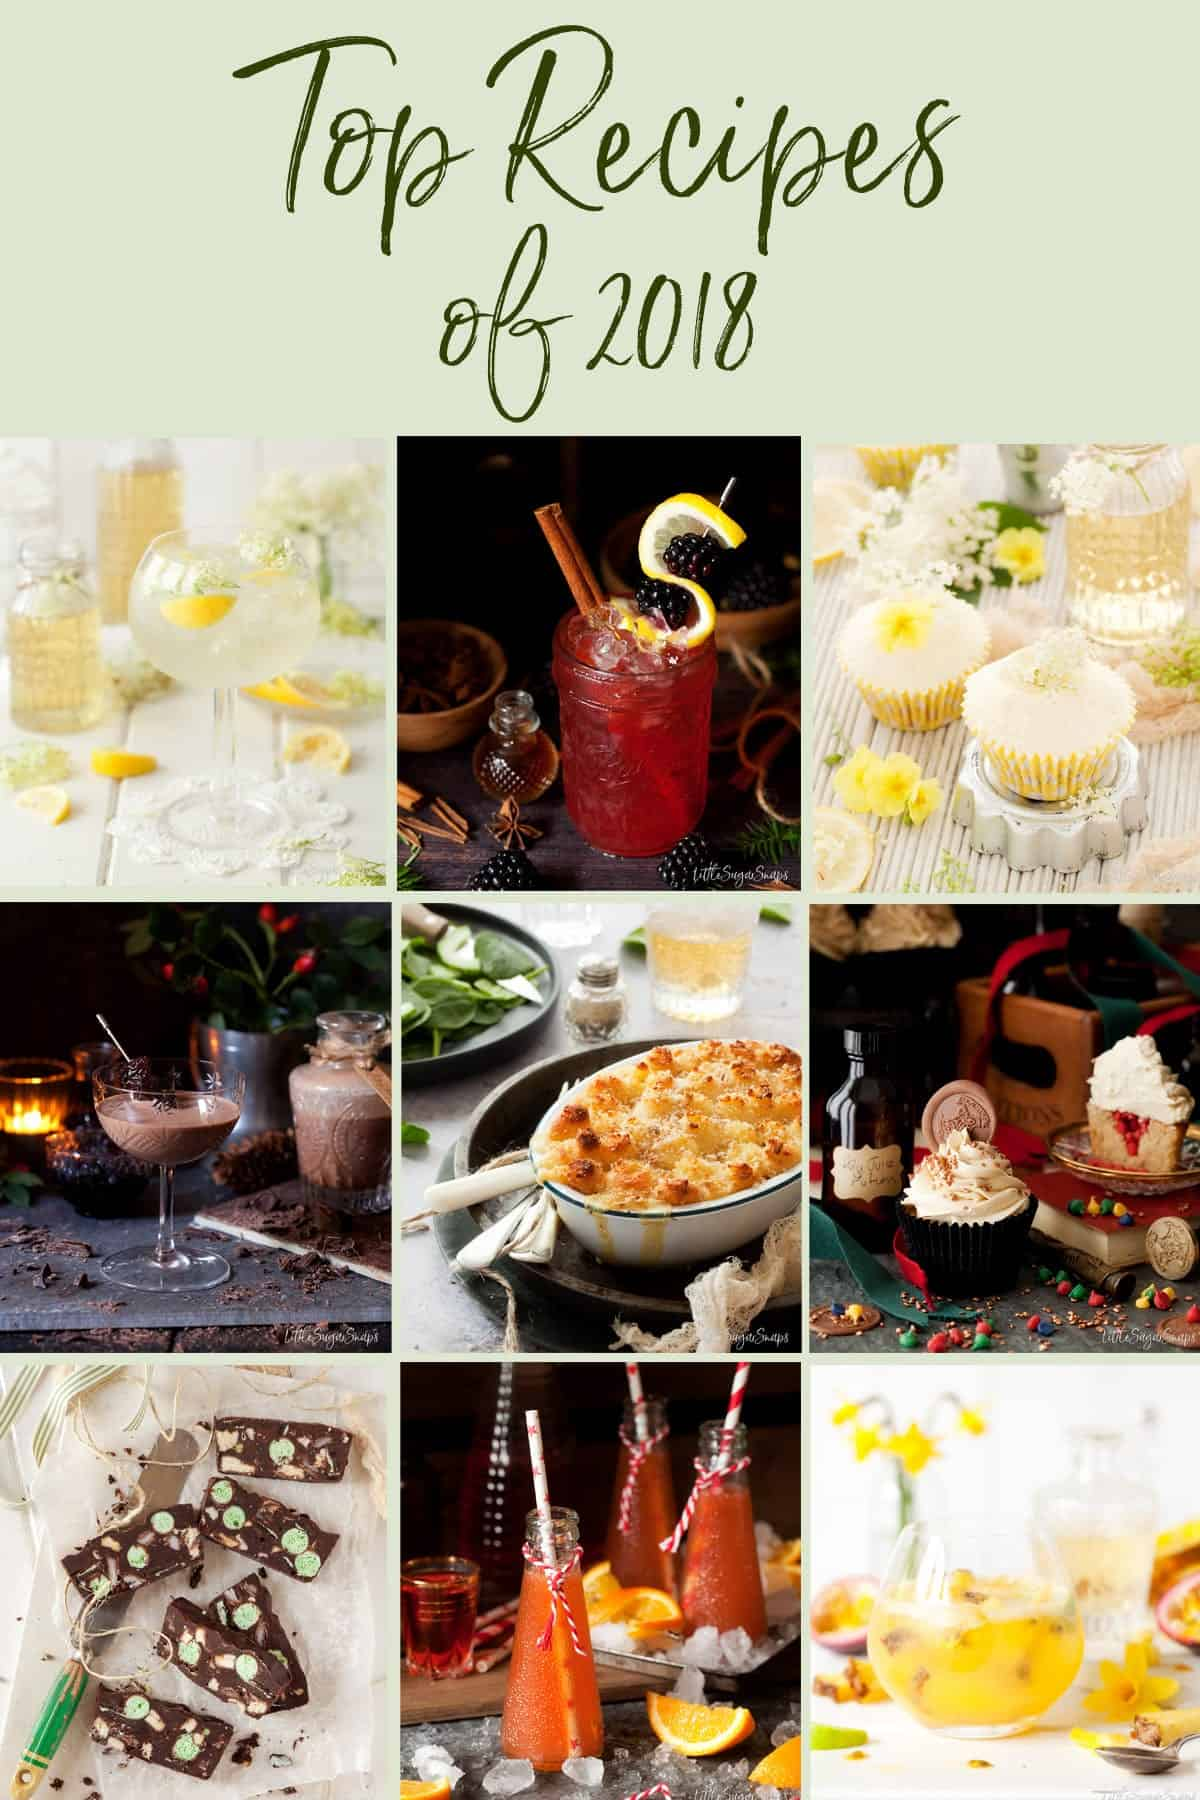 Collage of recipe images with text overlay.